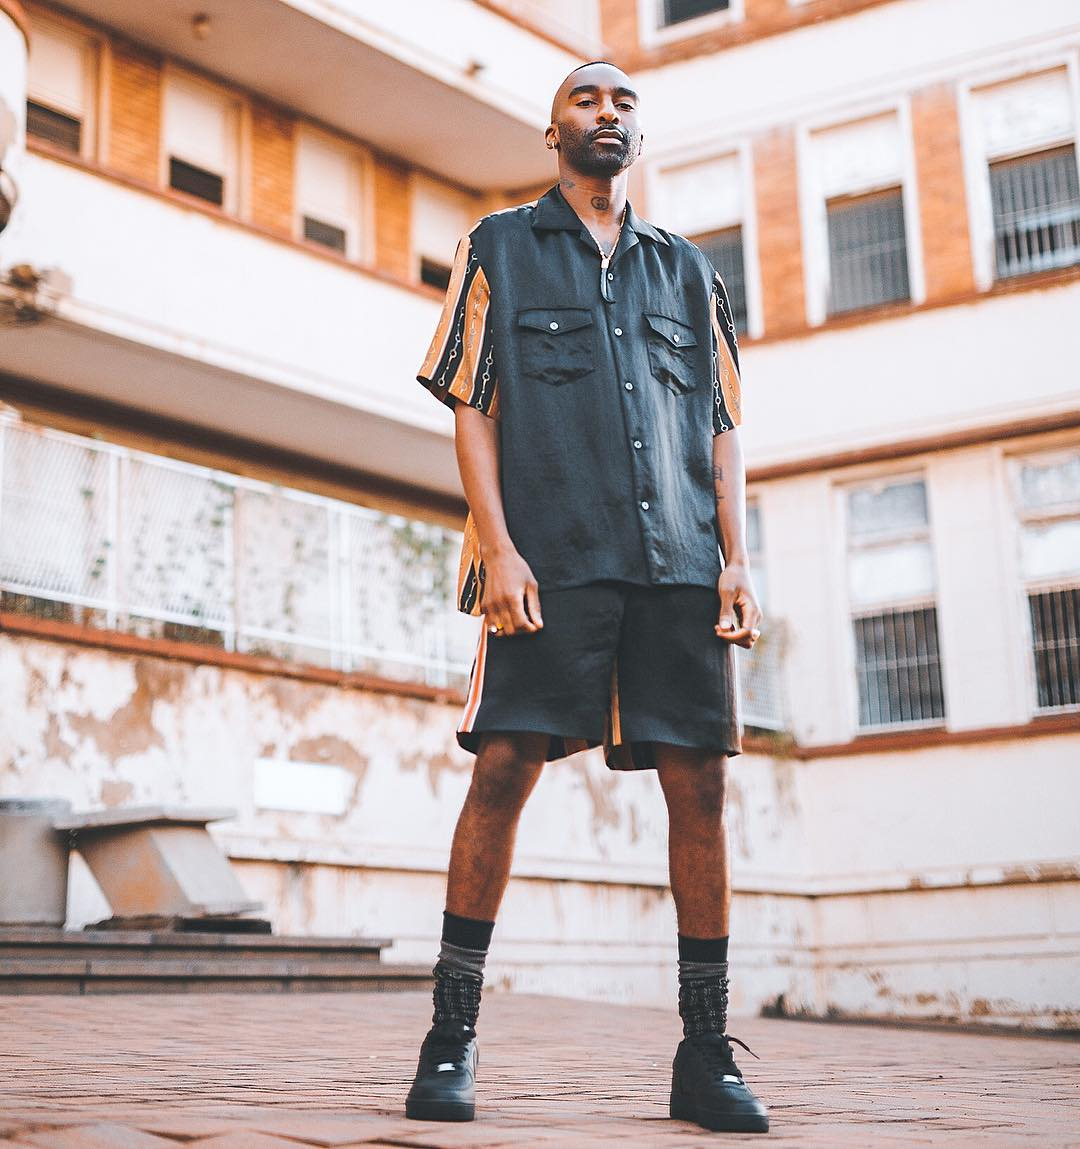 Riky Rick (South African rapper)